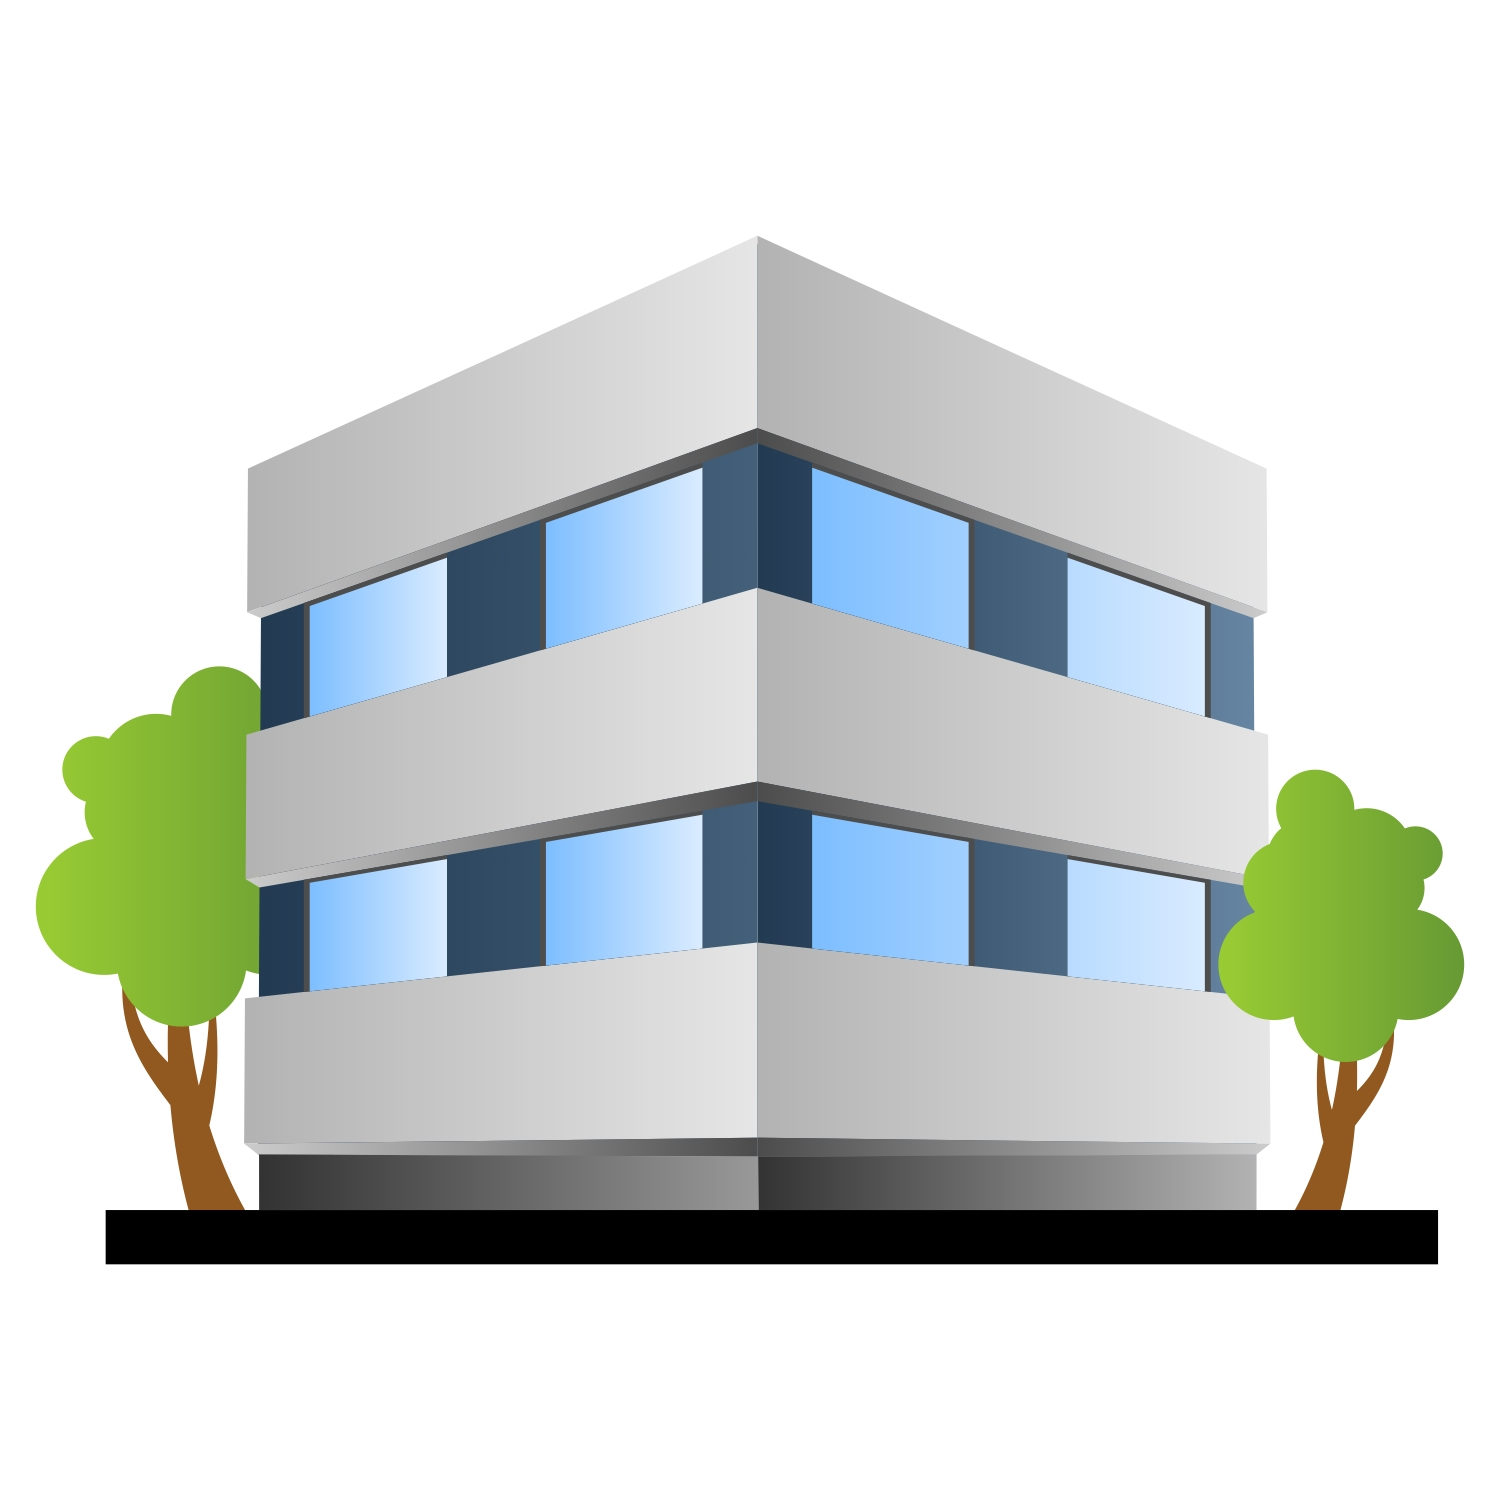 Church building clip art free clipart image 3.